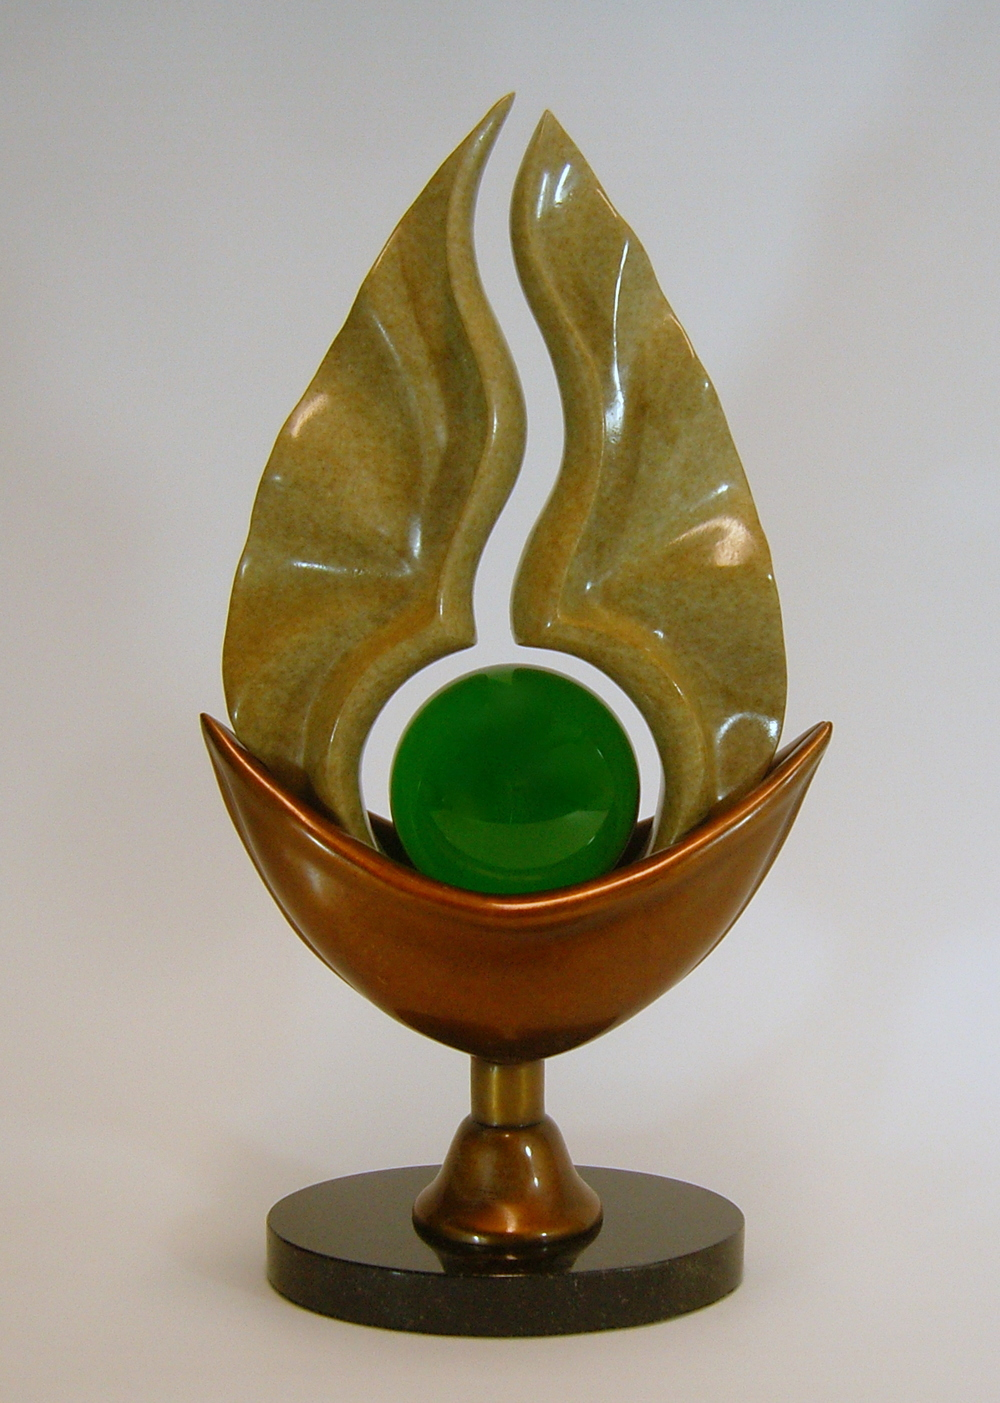 Seed (bronze) by Sam Hingston